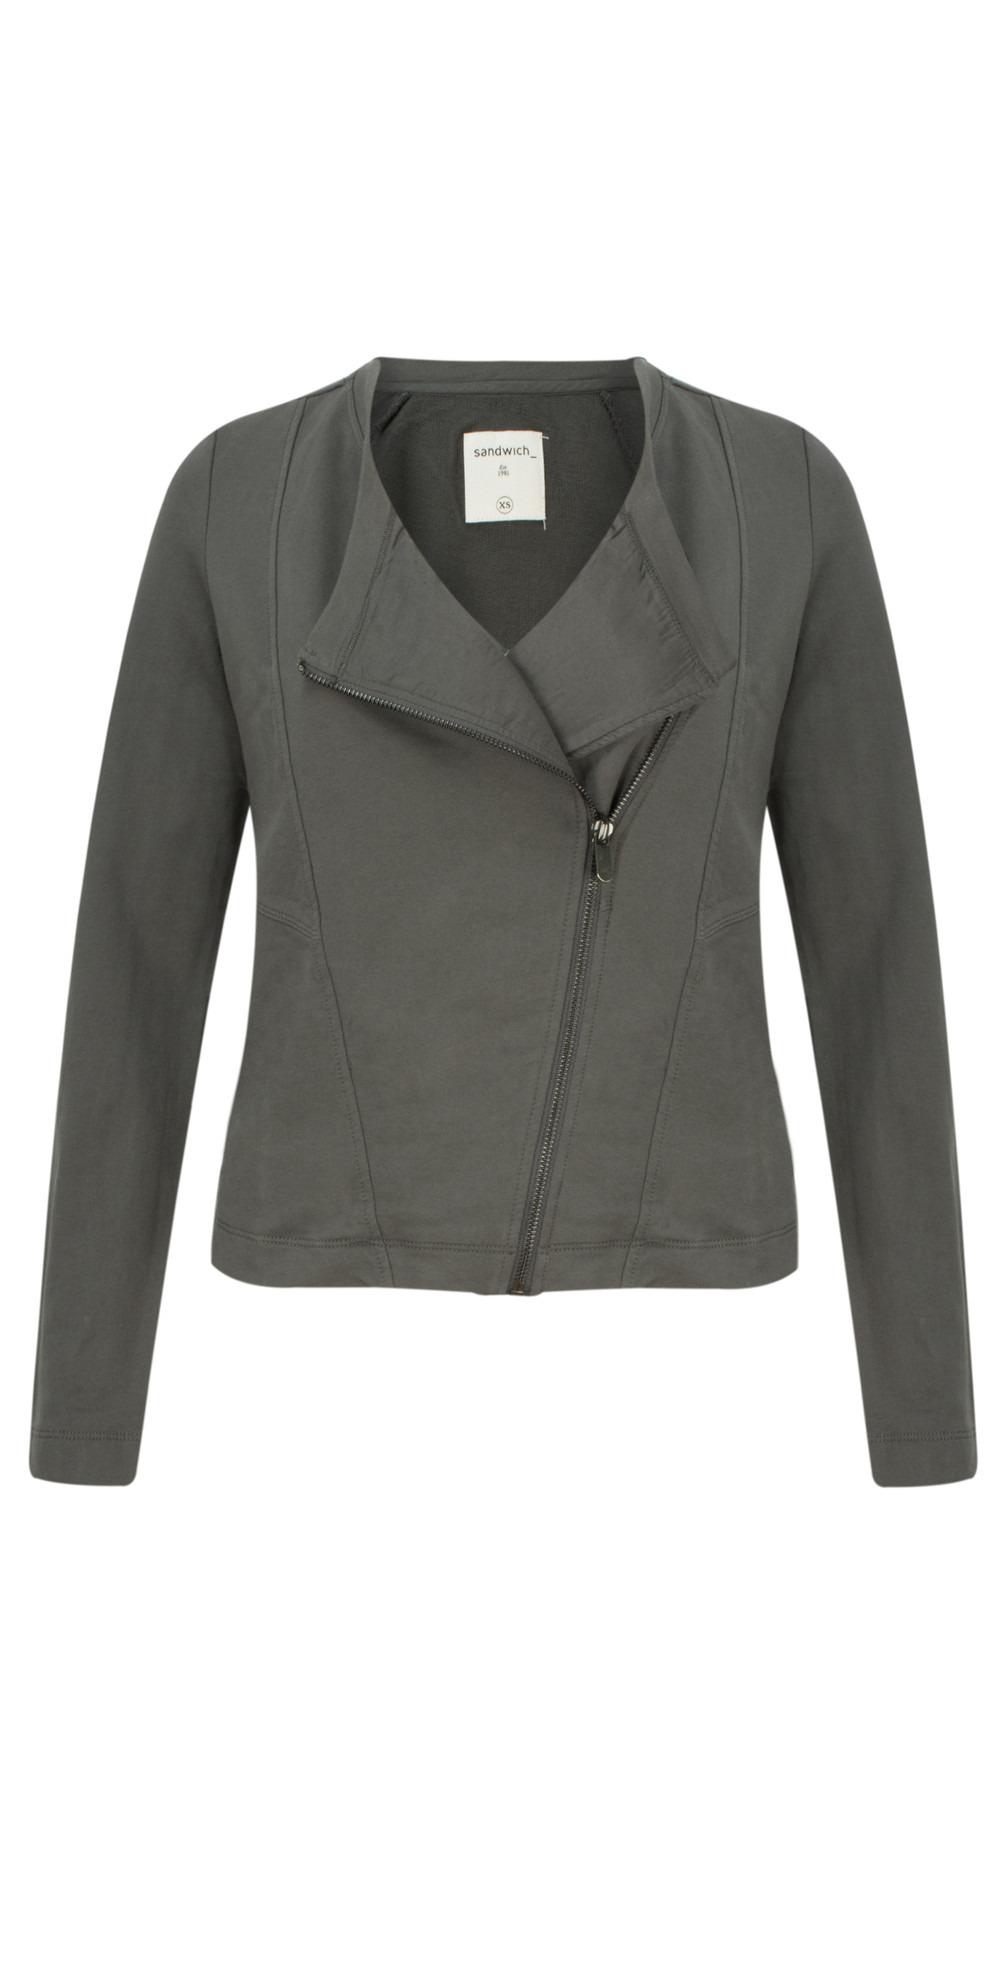 French Terry Cotton Jacket main image